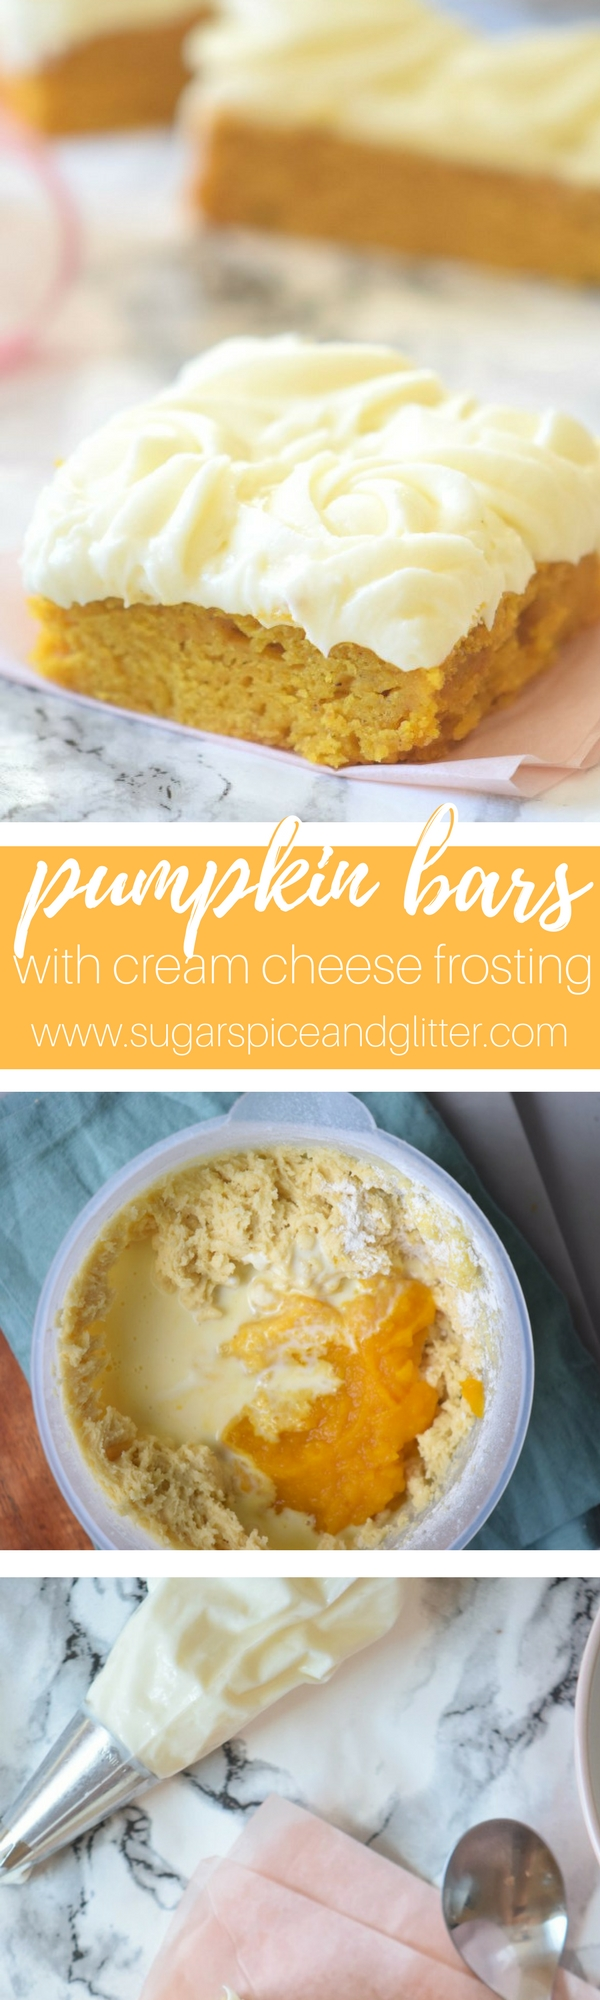 Pumpkin Bars with Cream Cheese Frosting - a soft and dense pumpkin slab cake with melt in your mouth cream cheese frosting